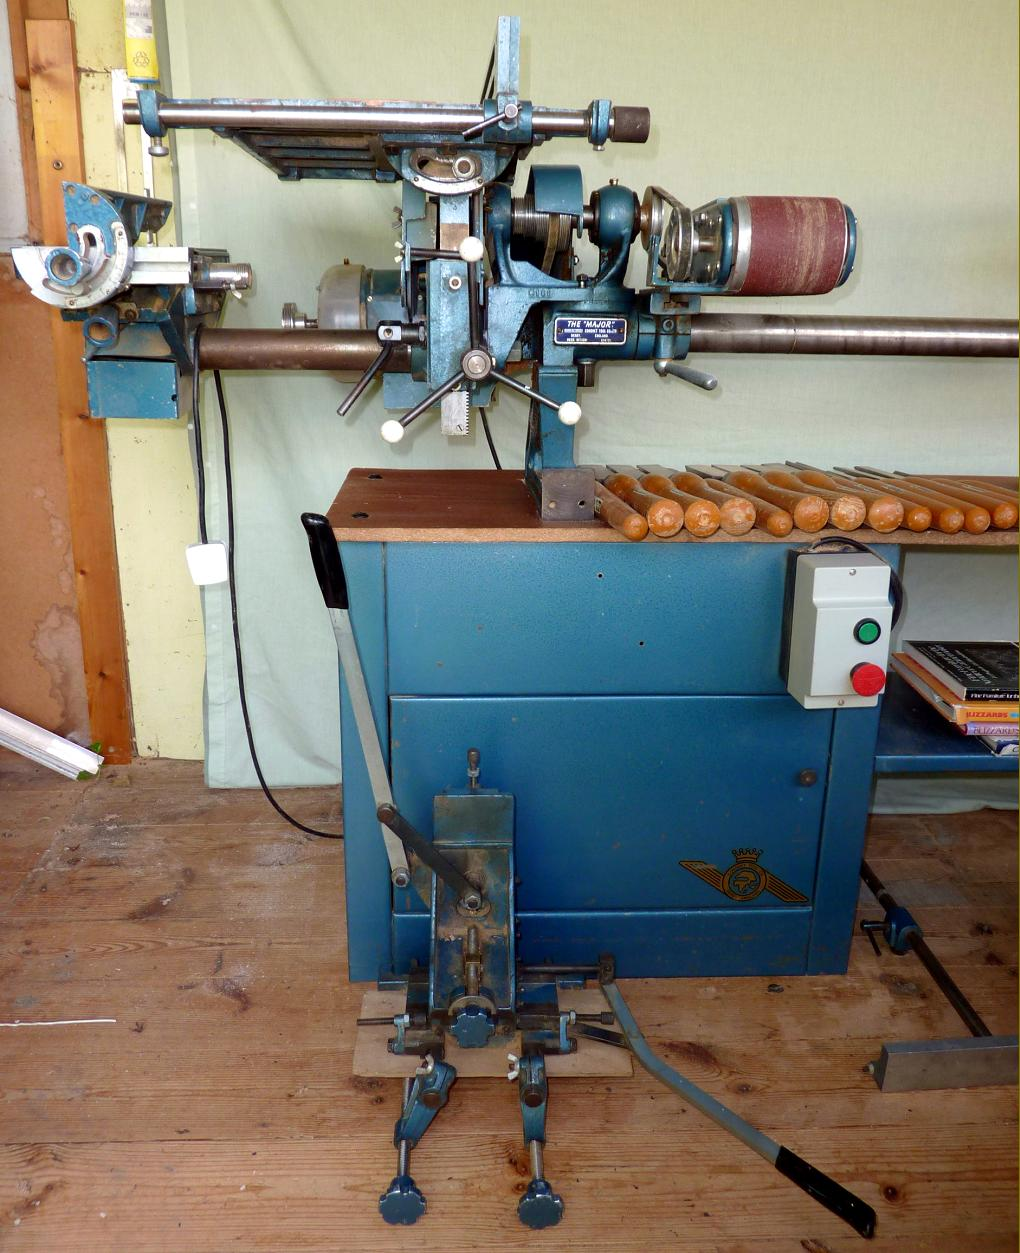 coronet major lathes rh lathes co uk coronet major lathe spare parts coronet major lathe parts